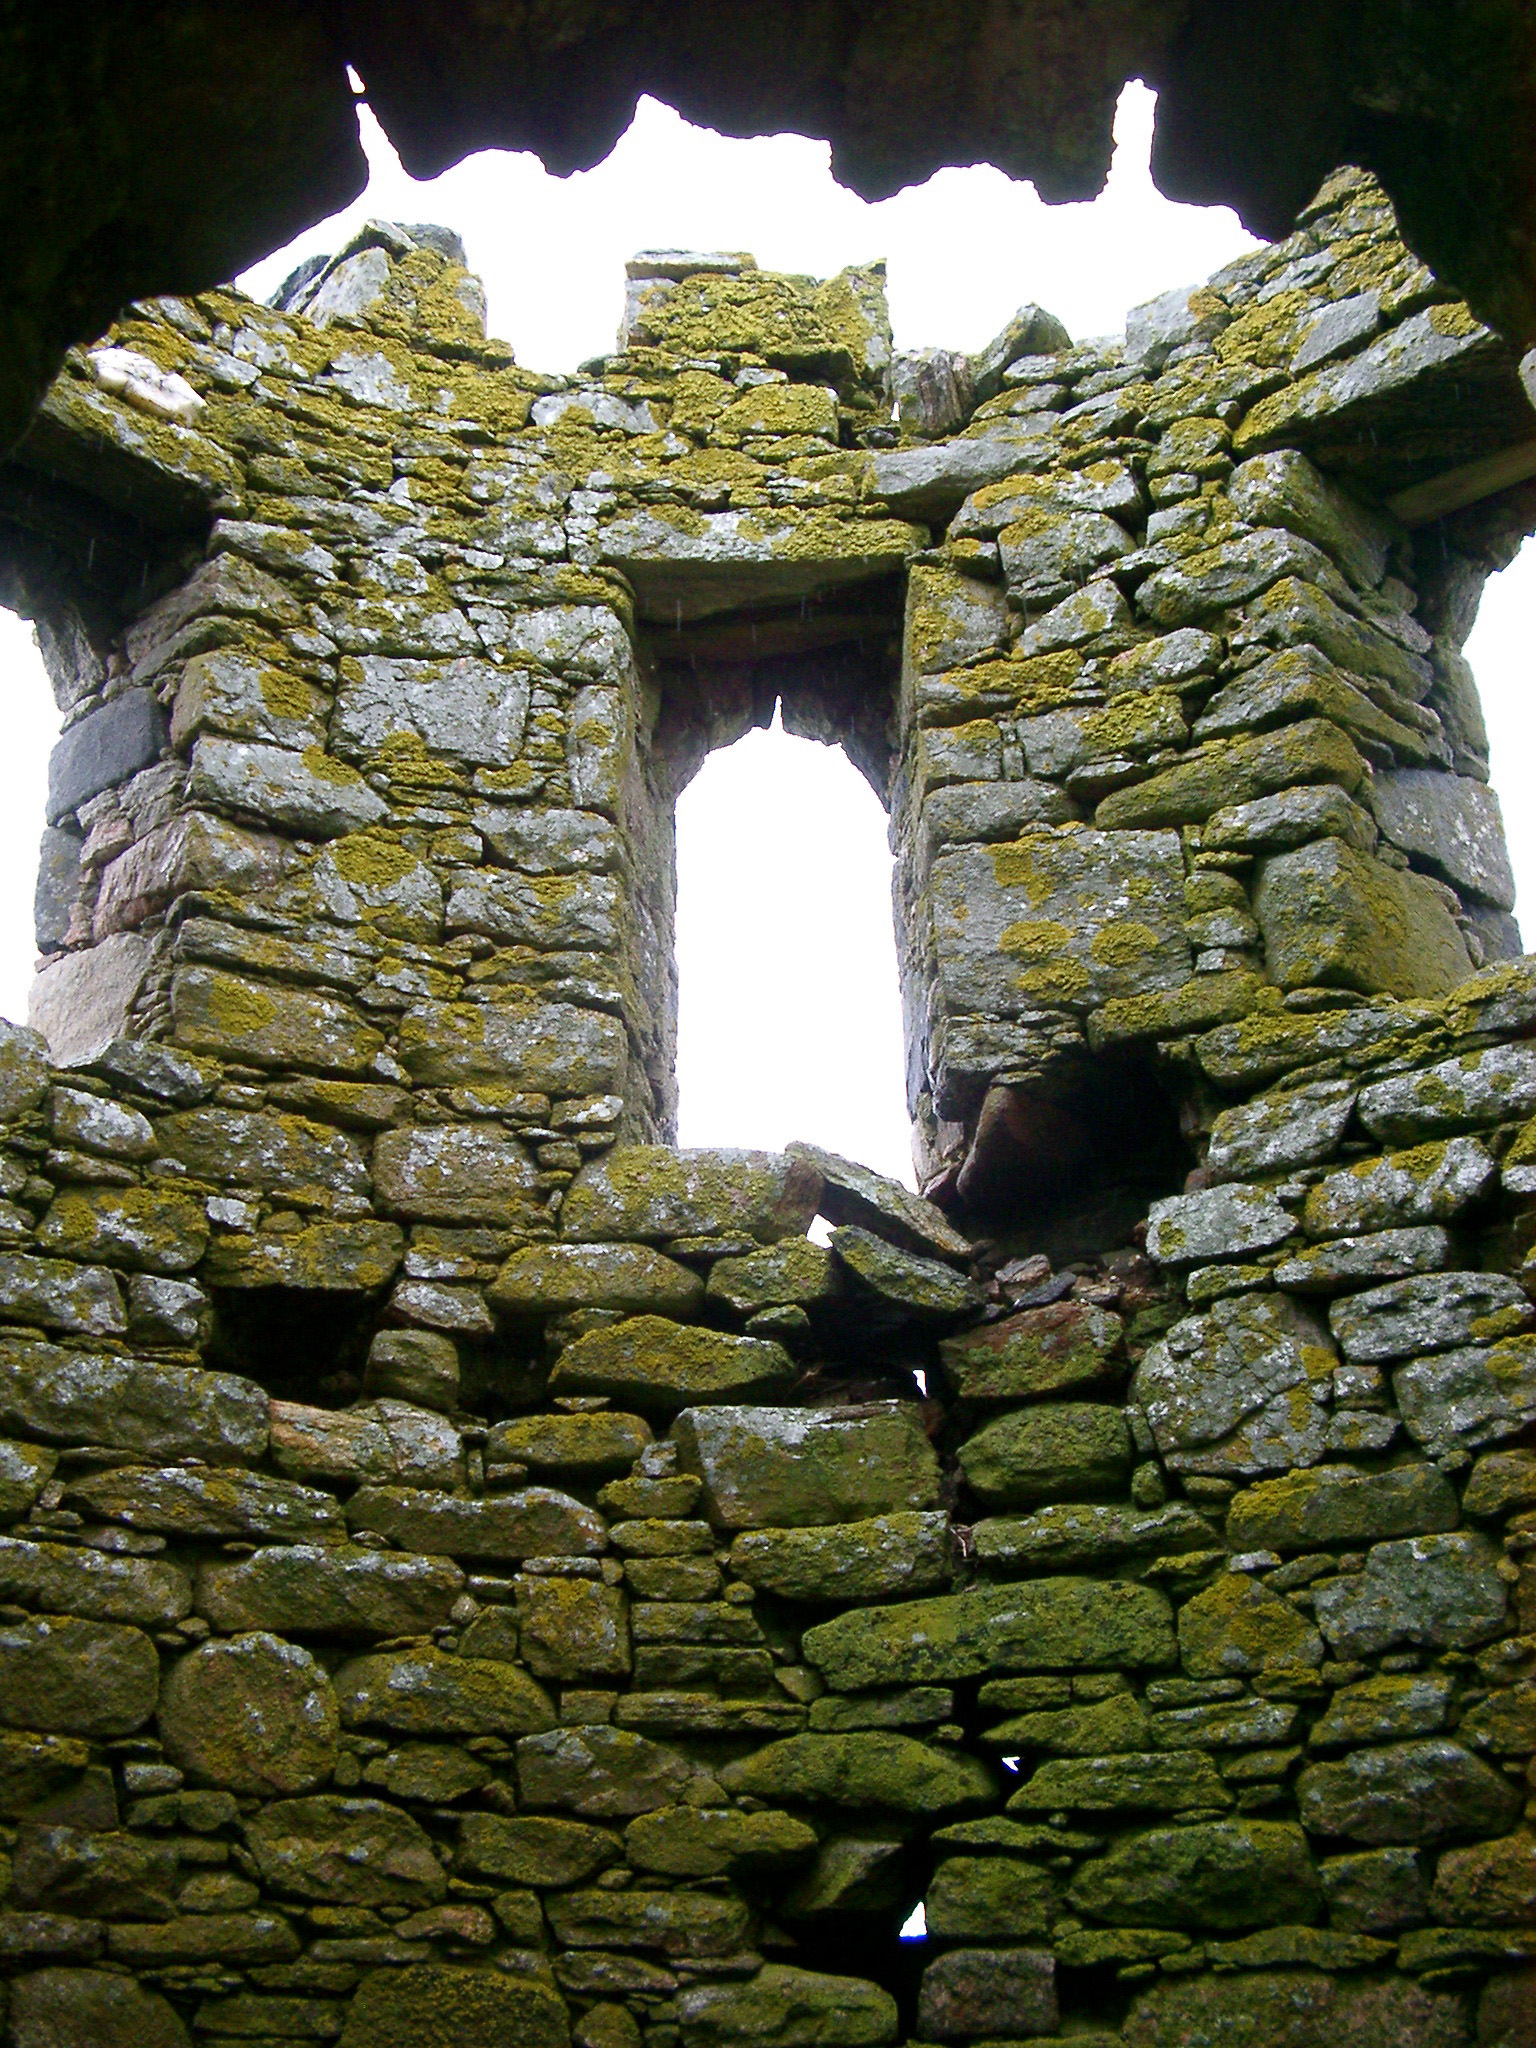 Looking Up at Moss Covered Rock Walls Inside Scolpaig Tower, Outer Hebrides, Scotland